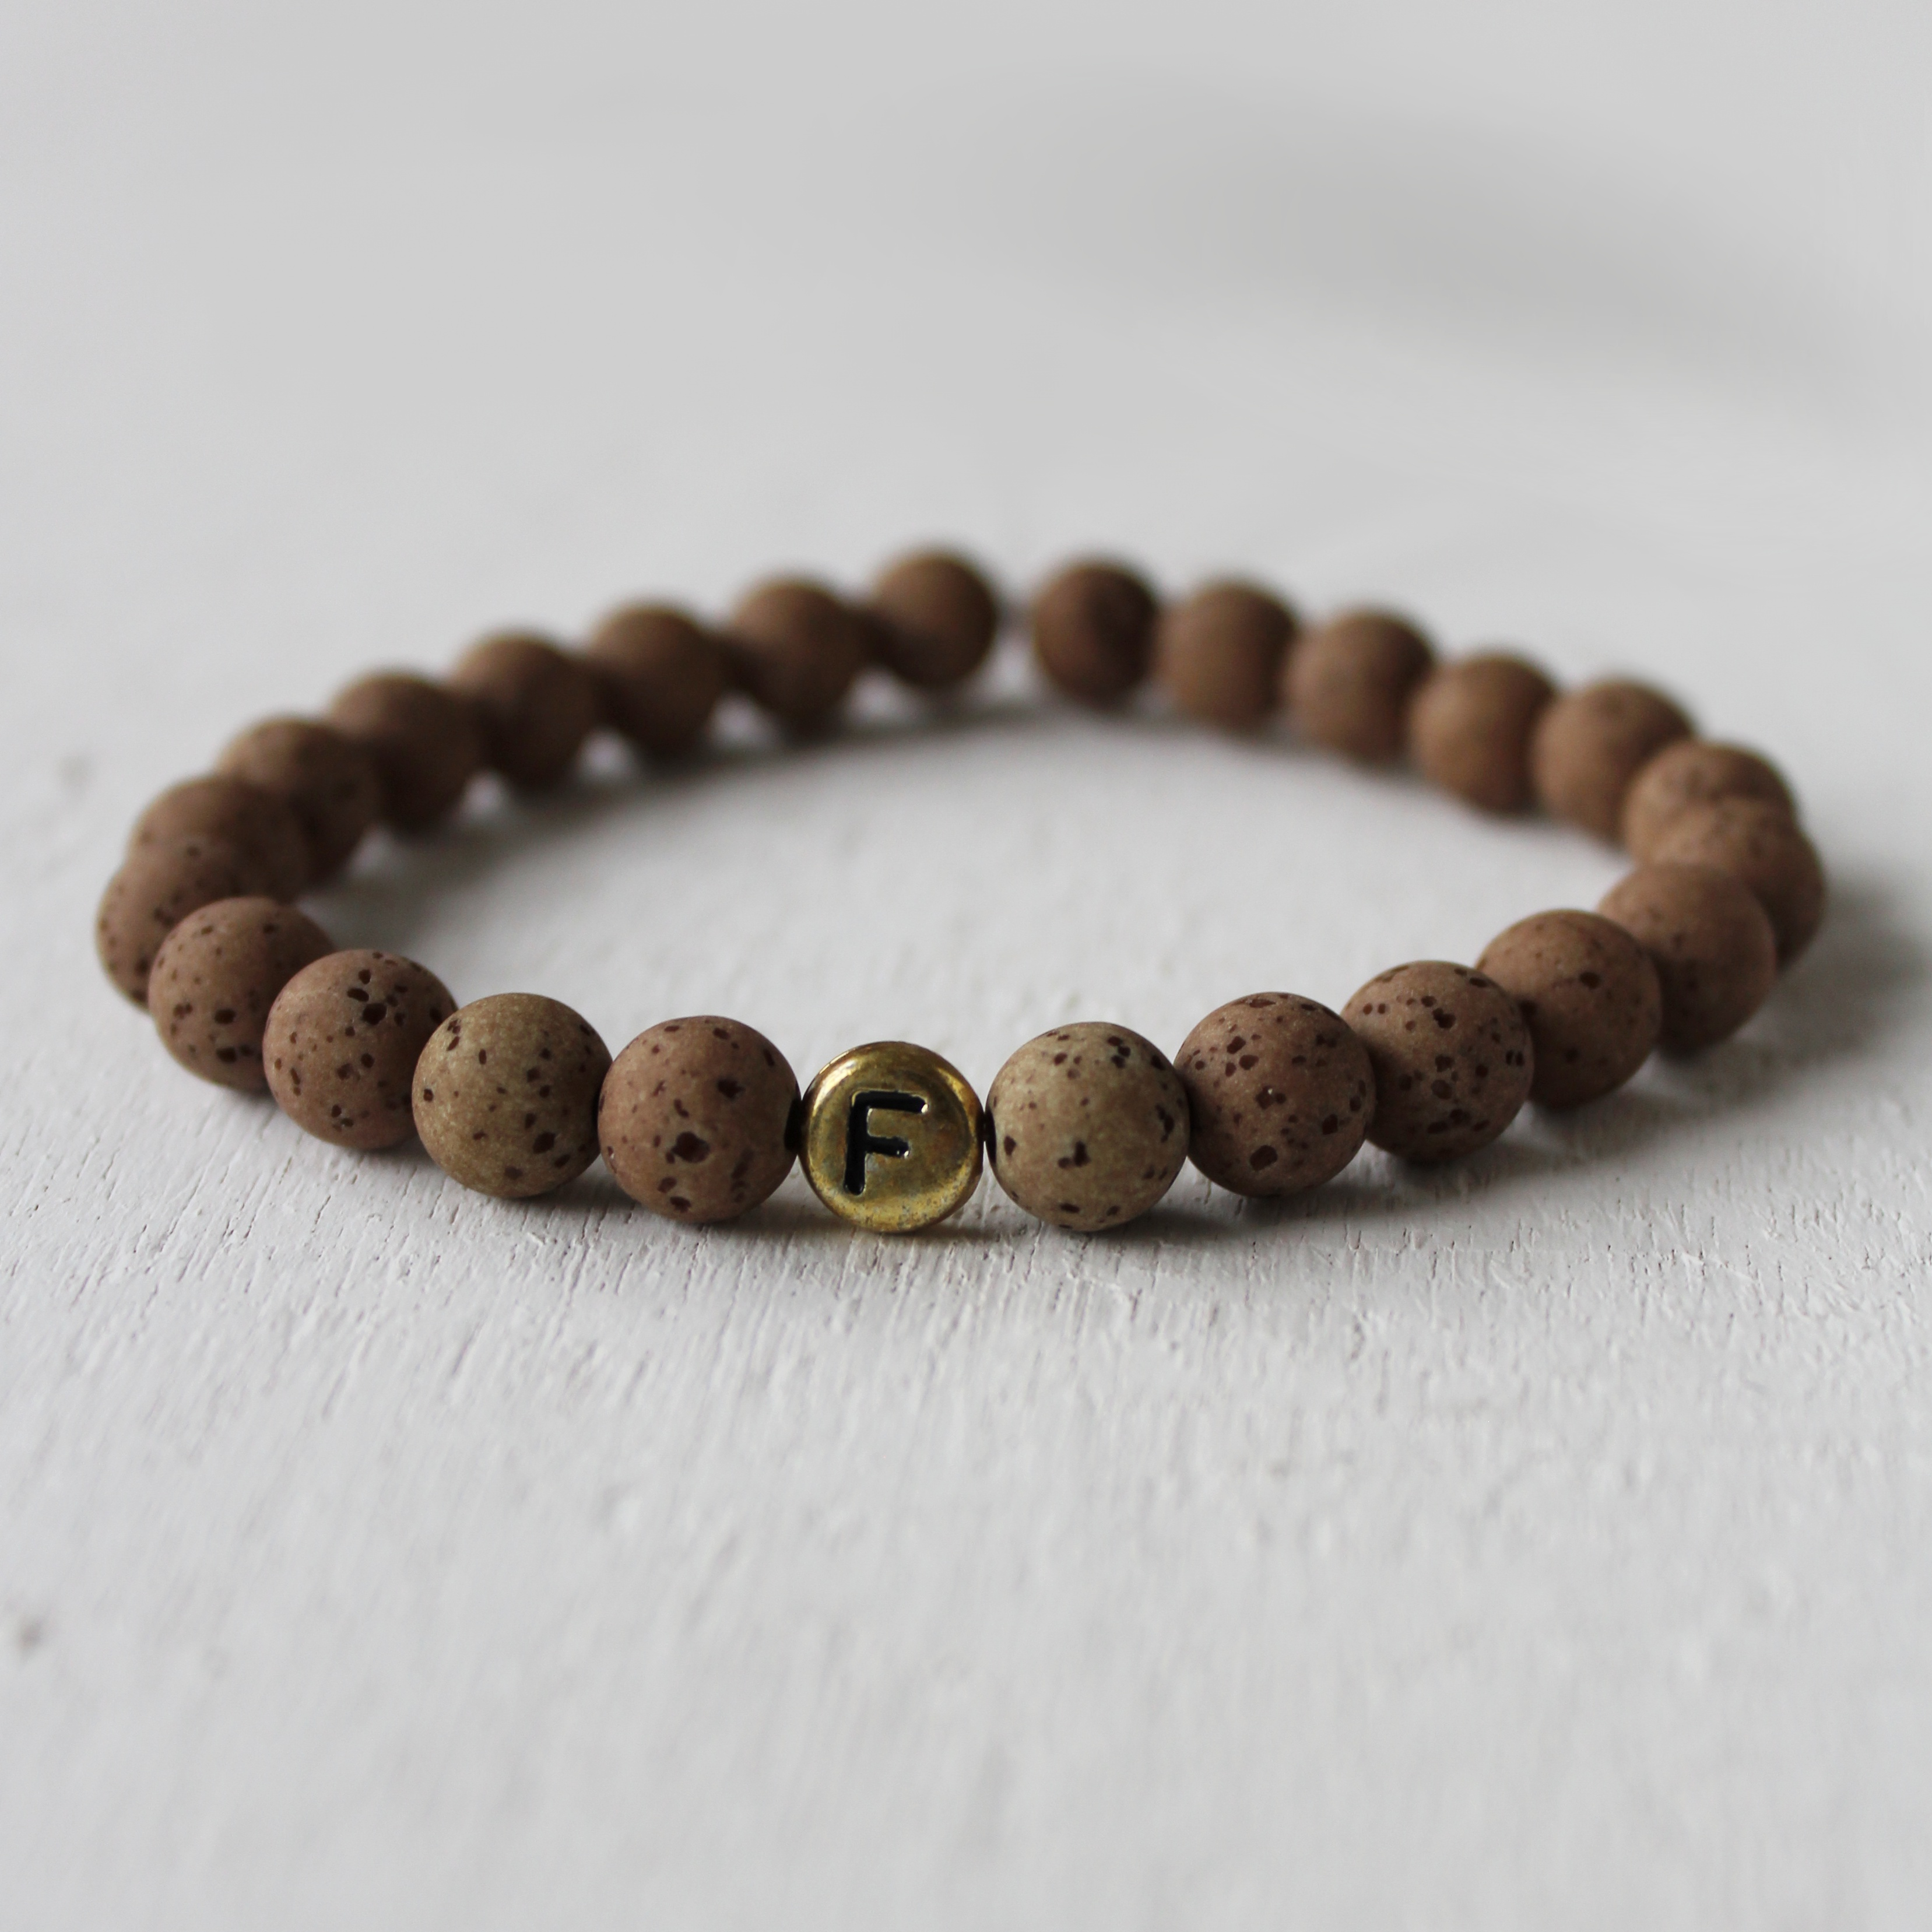 personalisiertes Armband mit Buchstabe – mocca / gold